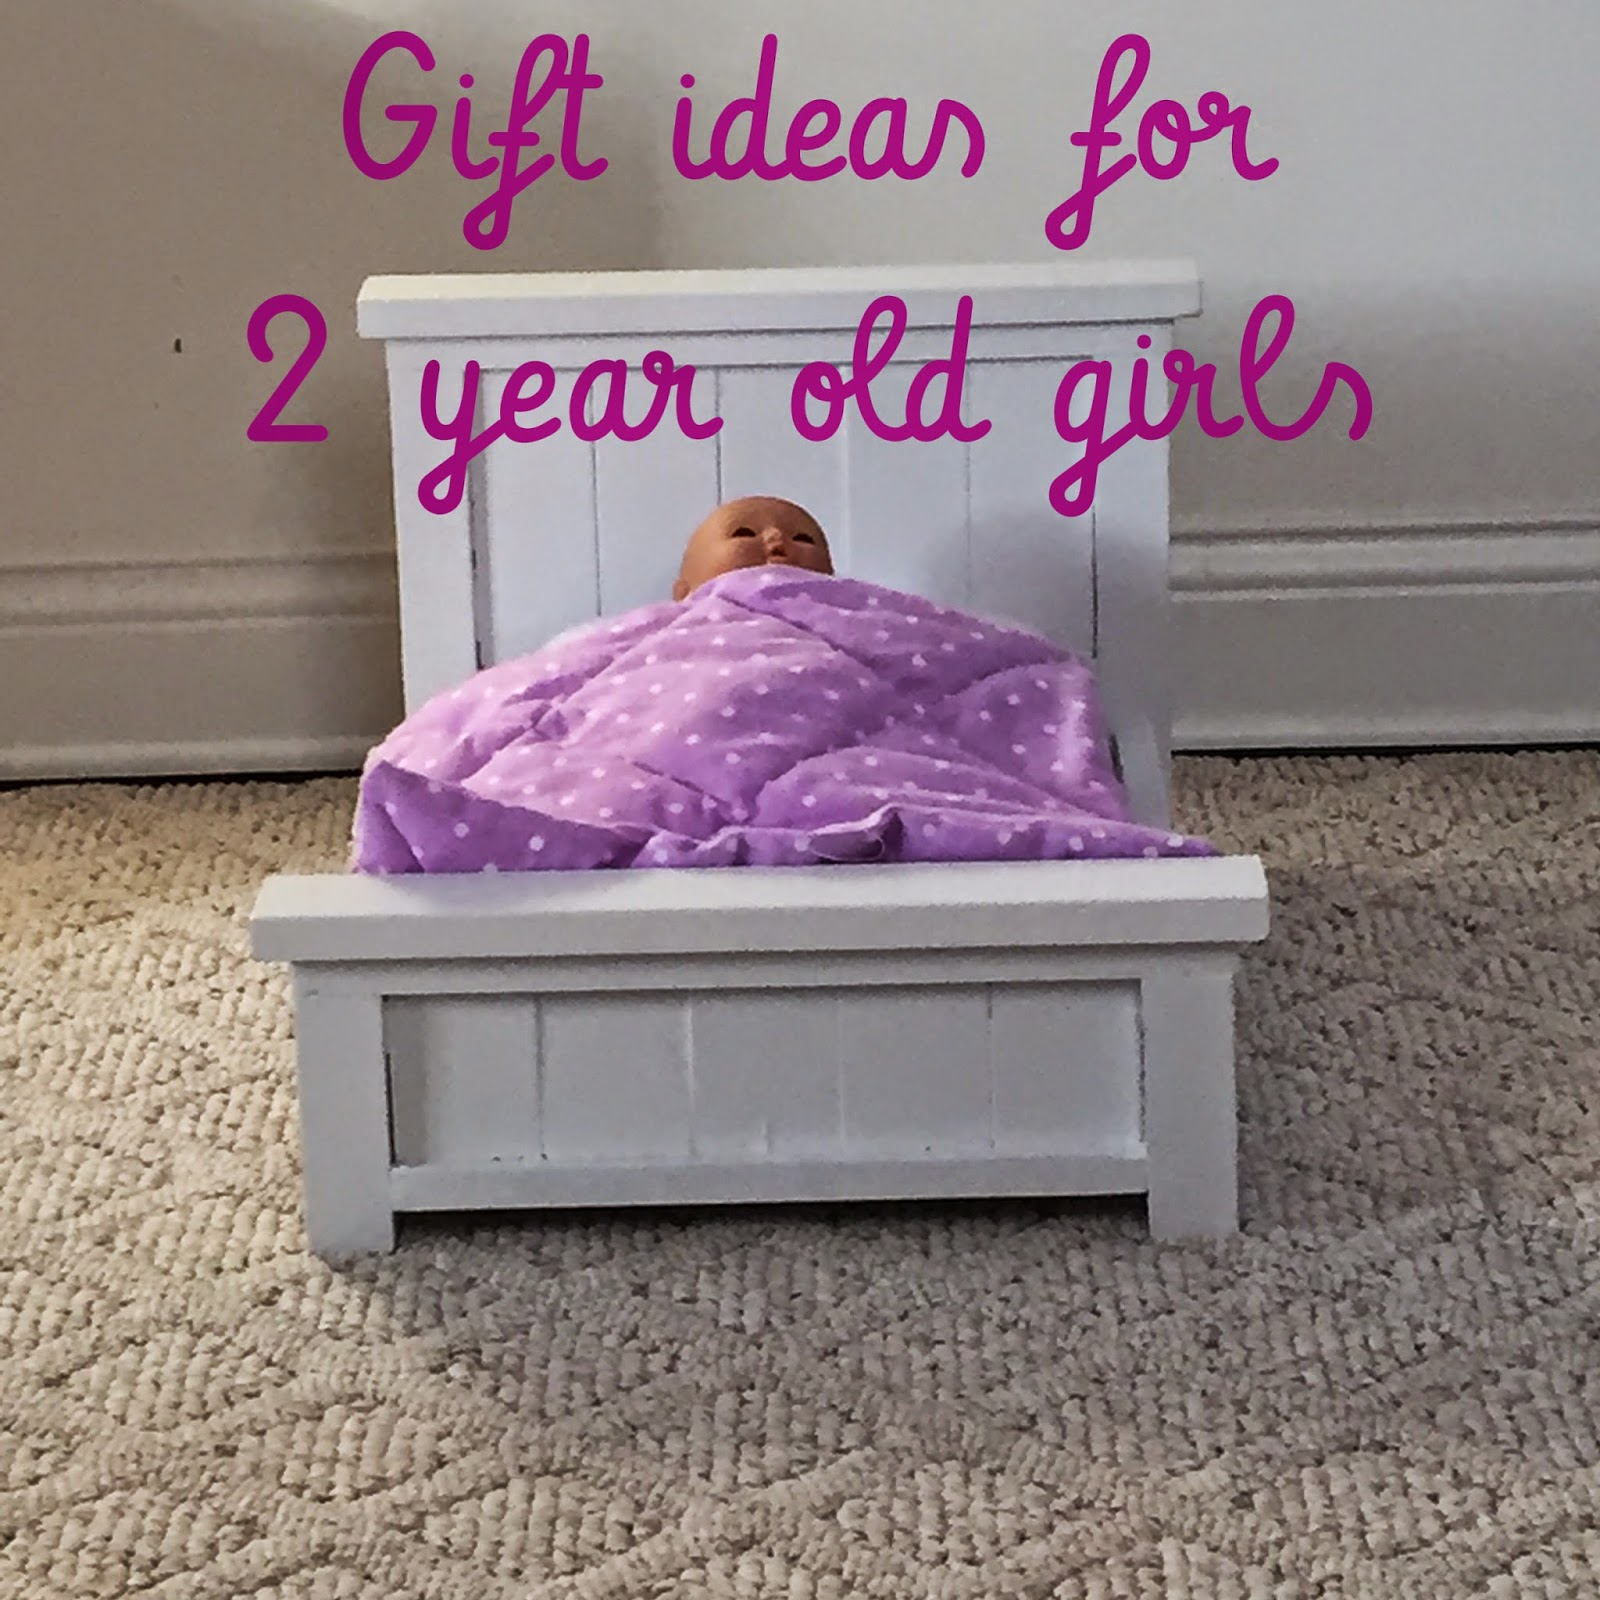 Toys For 2 Year Olds For Girls : Our delicious life gift ideas for year old girls